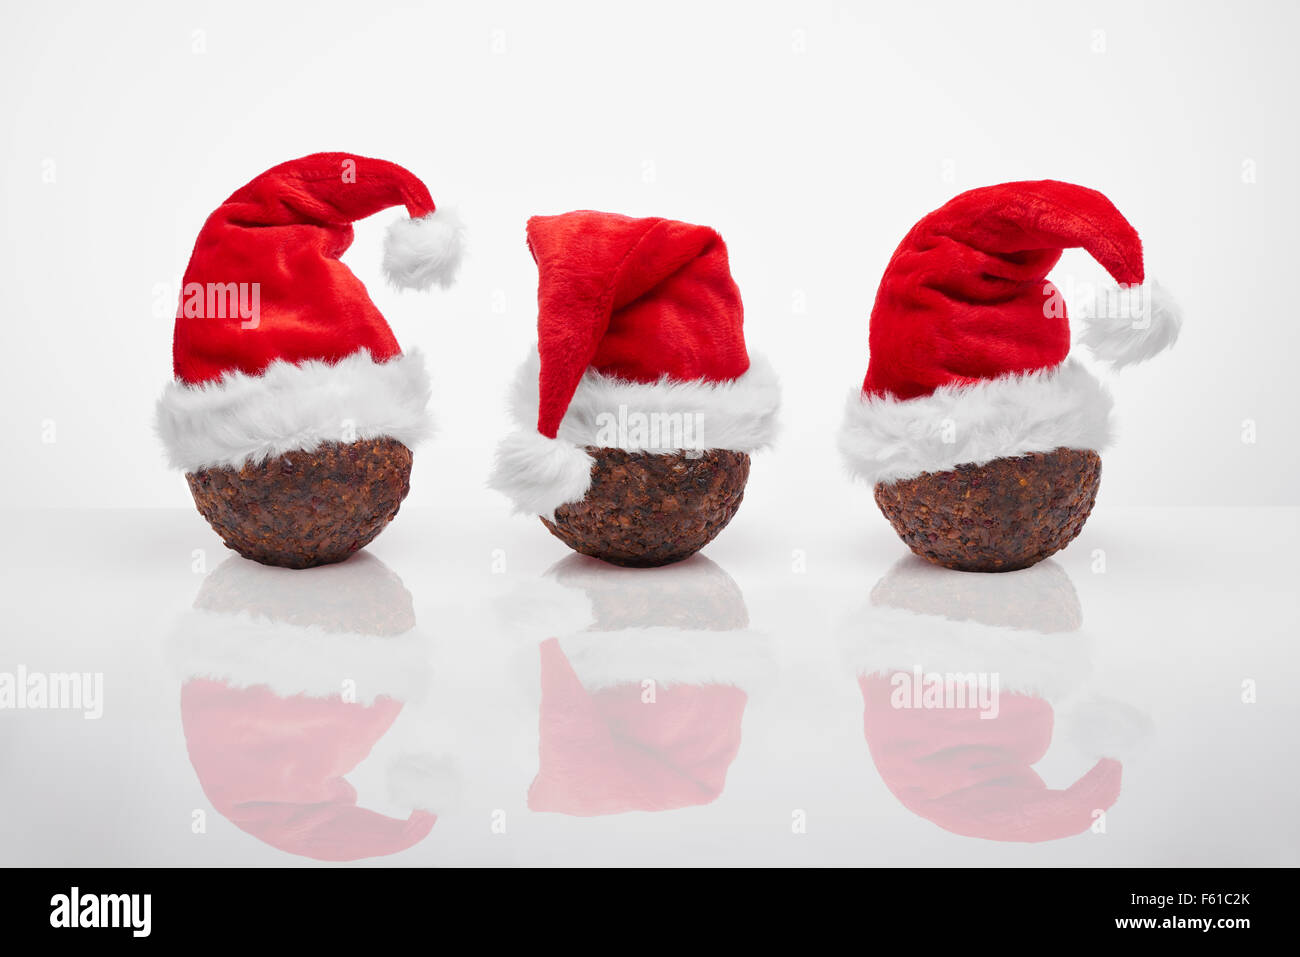 Christmas Puddings with red Santa hats - Stock Image